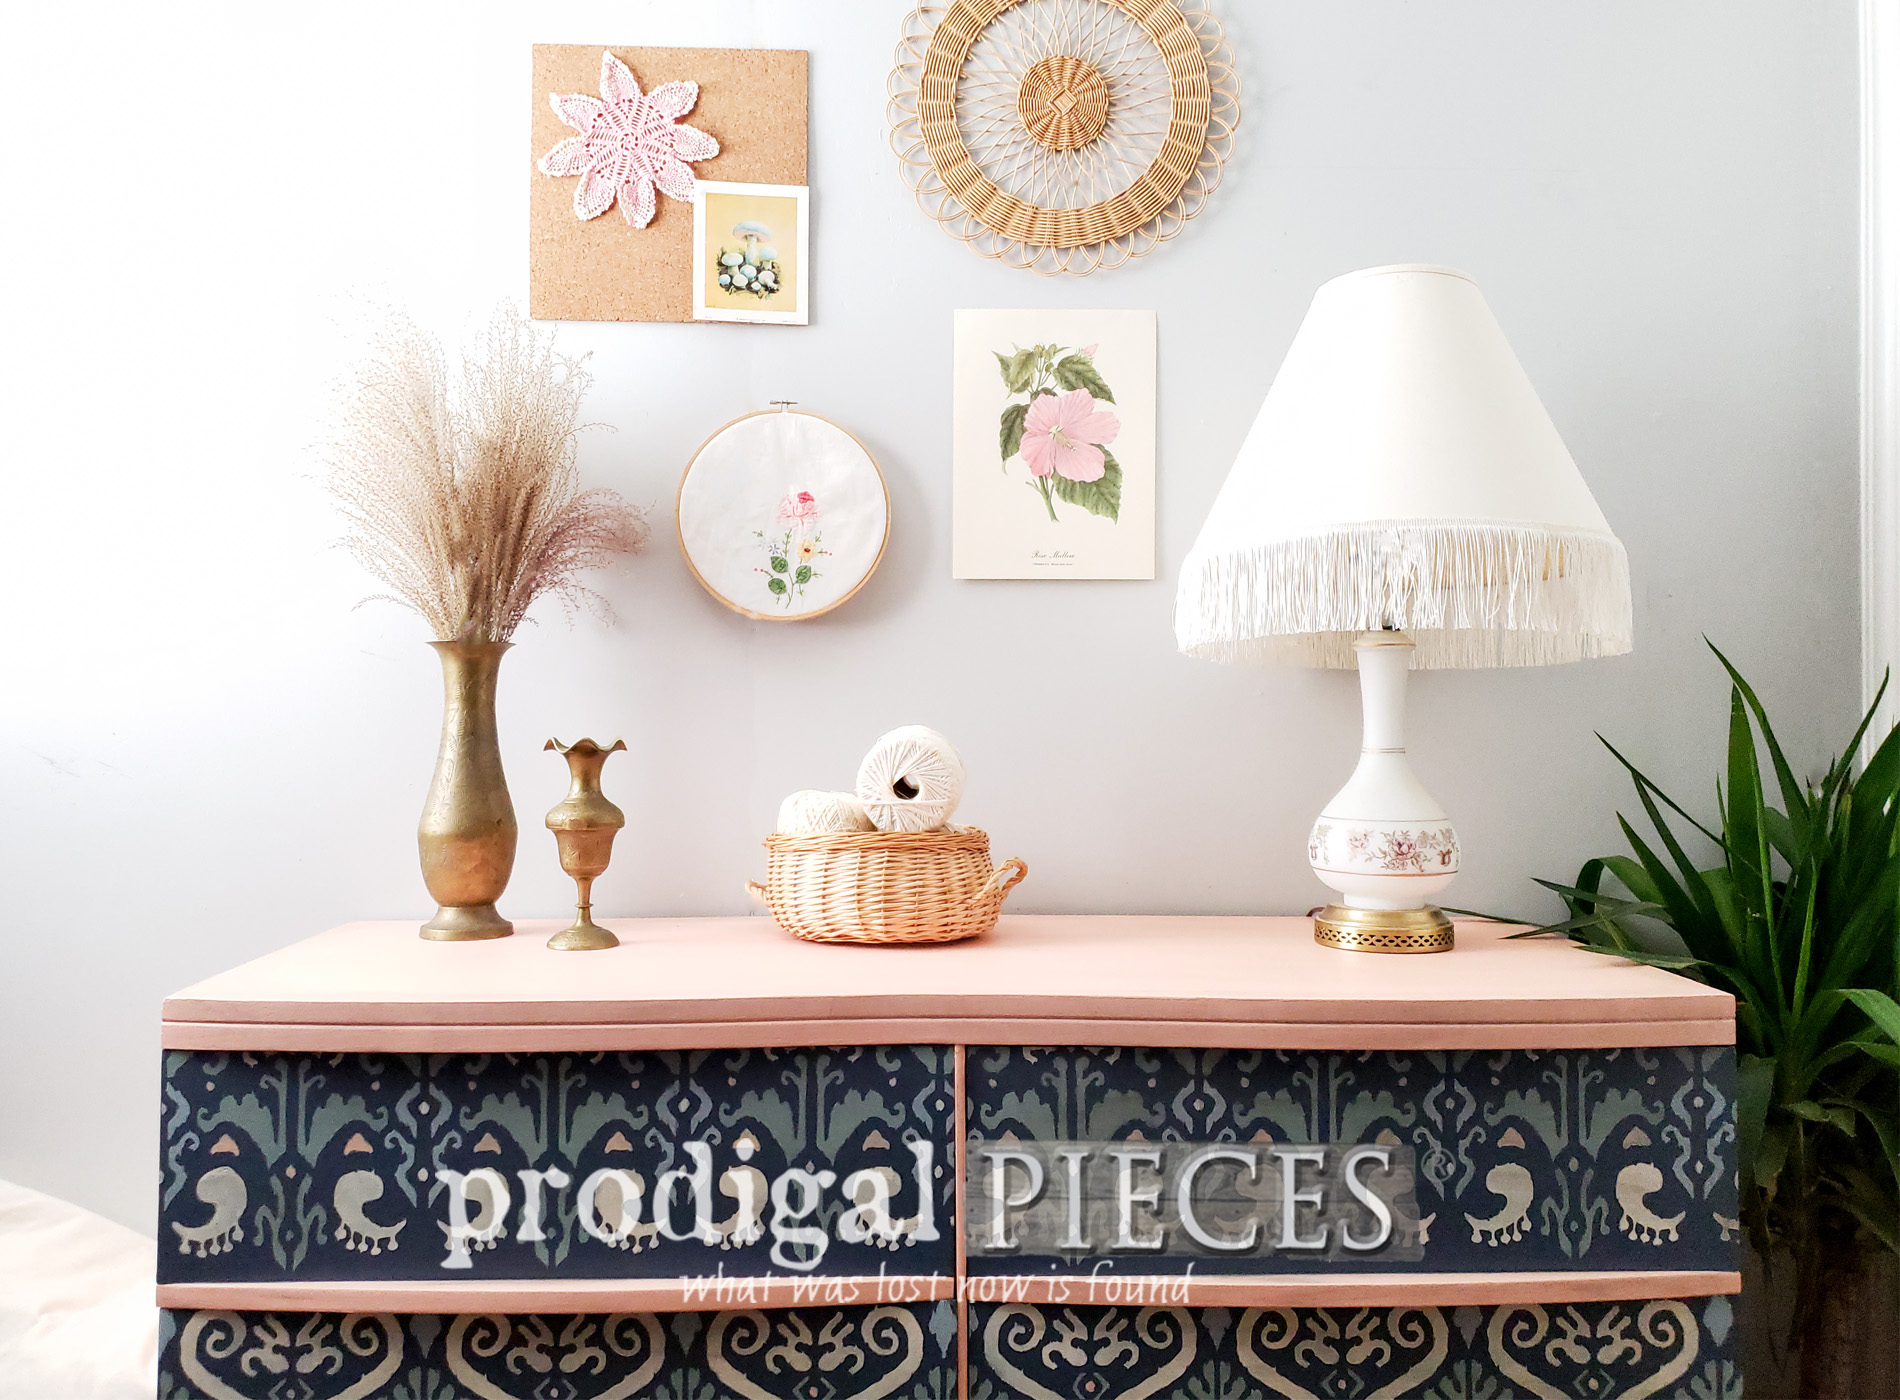 Featured Ikat Mid Century Modern Dresser for Boho Style Decor by Larissa of Prodigal Pieces | prodigalpieces.com